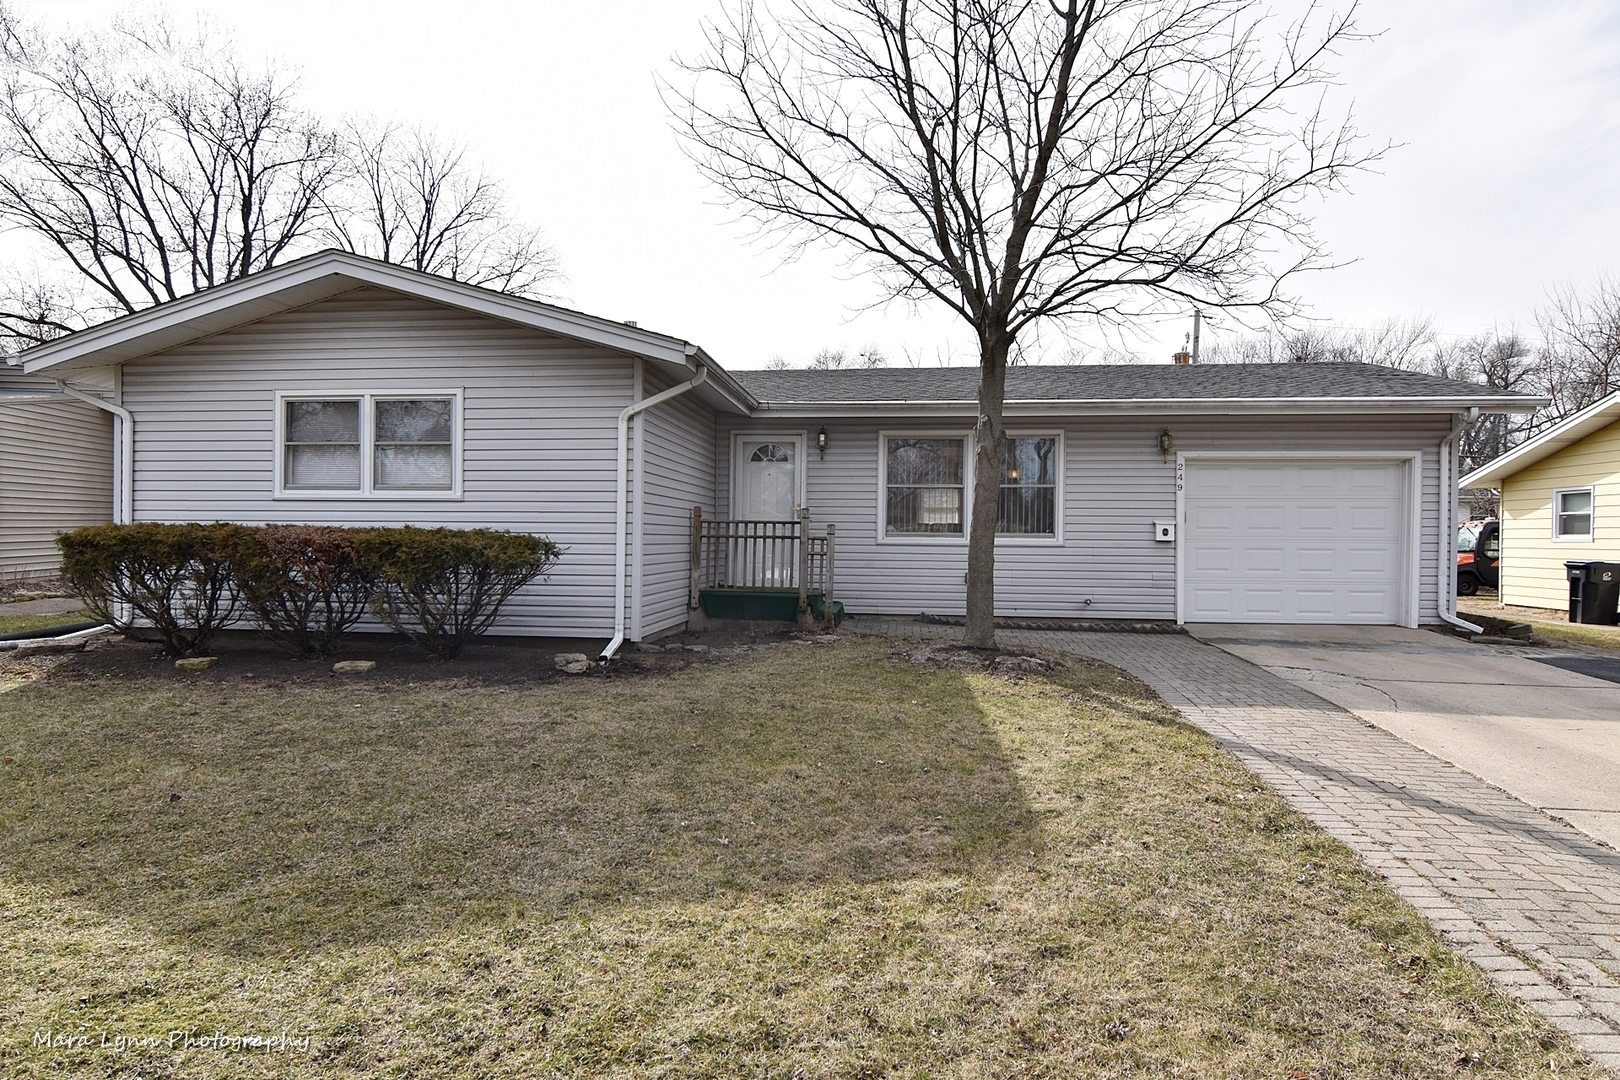 249 South 17th Street Geneva, St. Charles, Batavia, South Elgin, Elburn, Elgin, North Aurora, Aurora  Home Listings - The Cory Jones Team - RE/MAX Great American North Geneva, St. Charles, Batavia Real Estate Agent